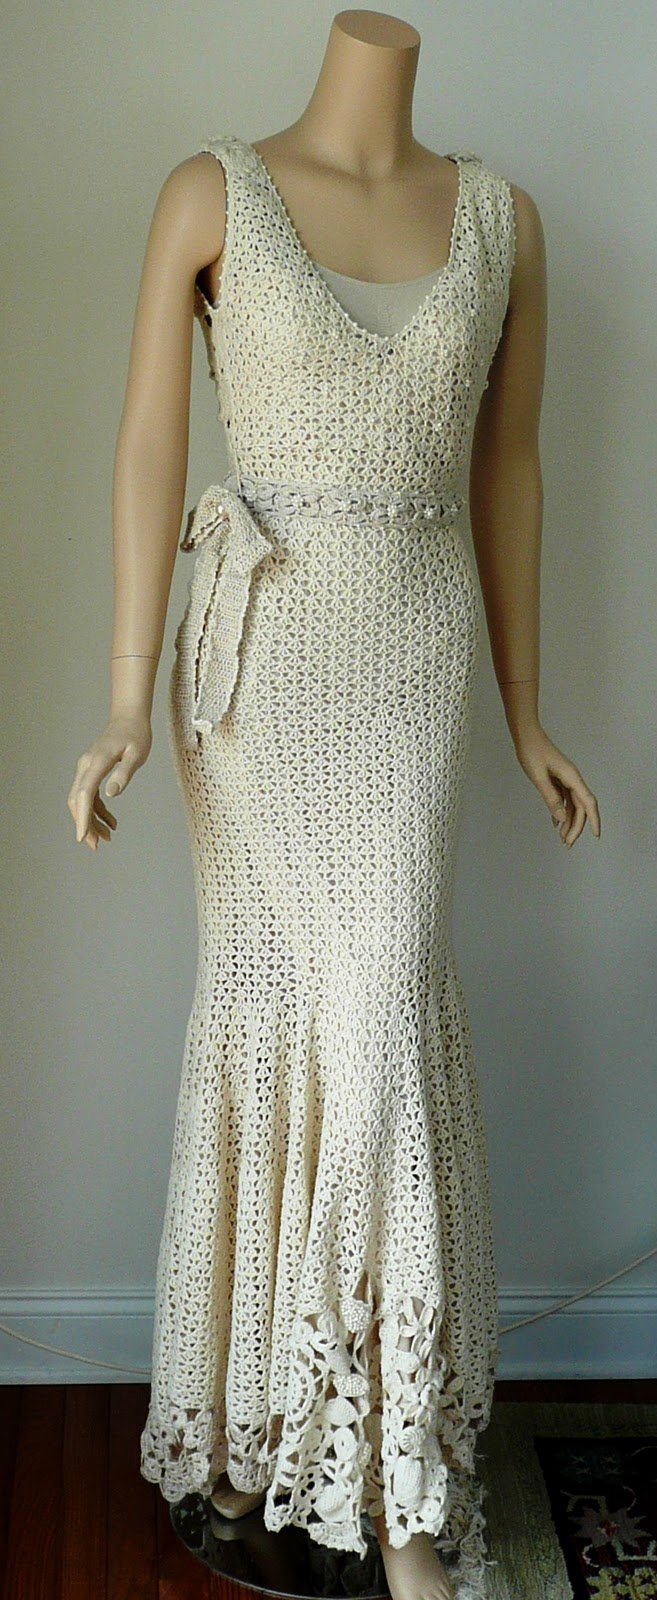 Cgoa now 2010 design competition winners for Crochet lace wedding dress pattern